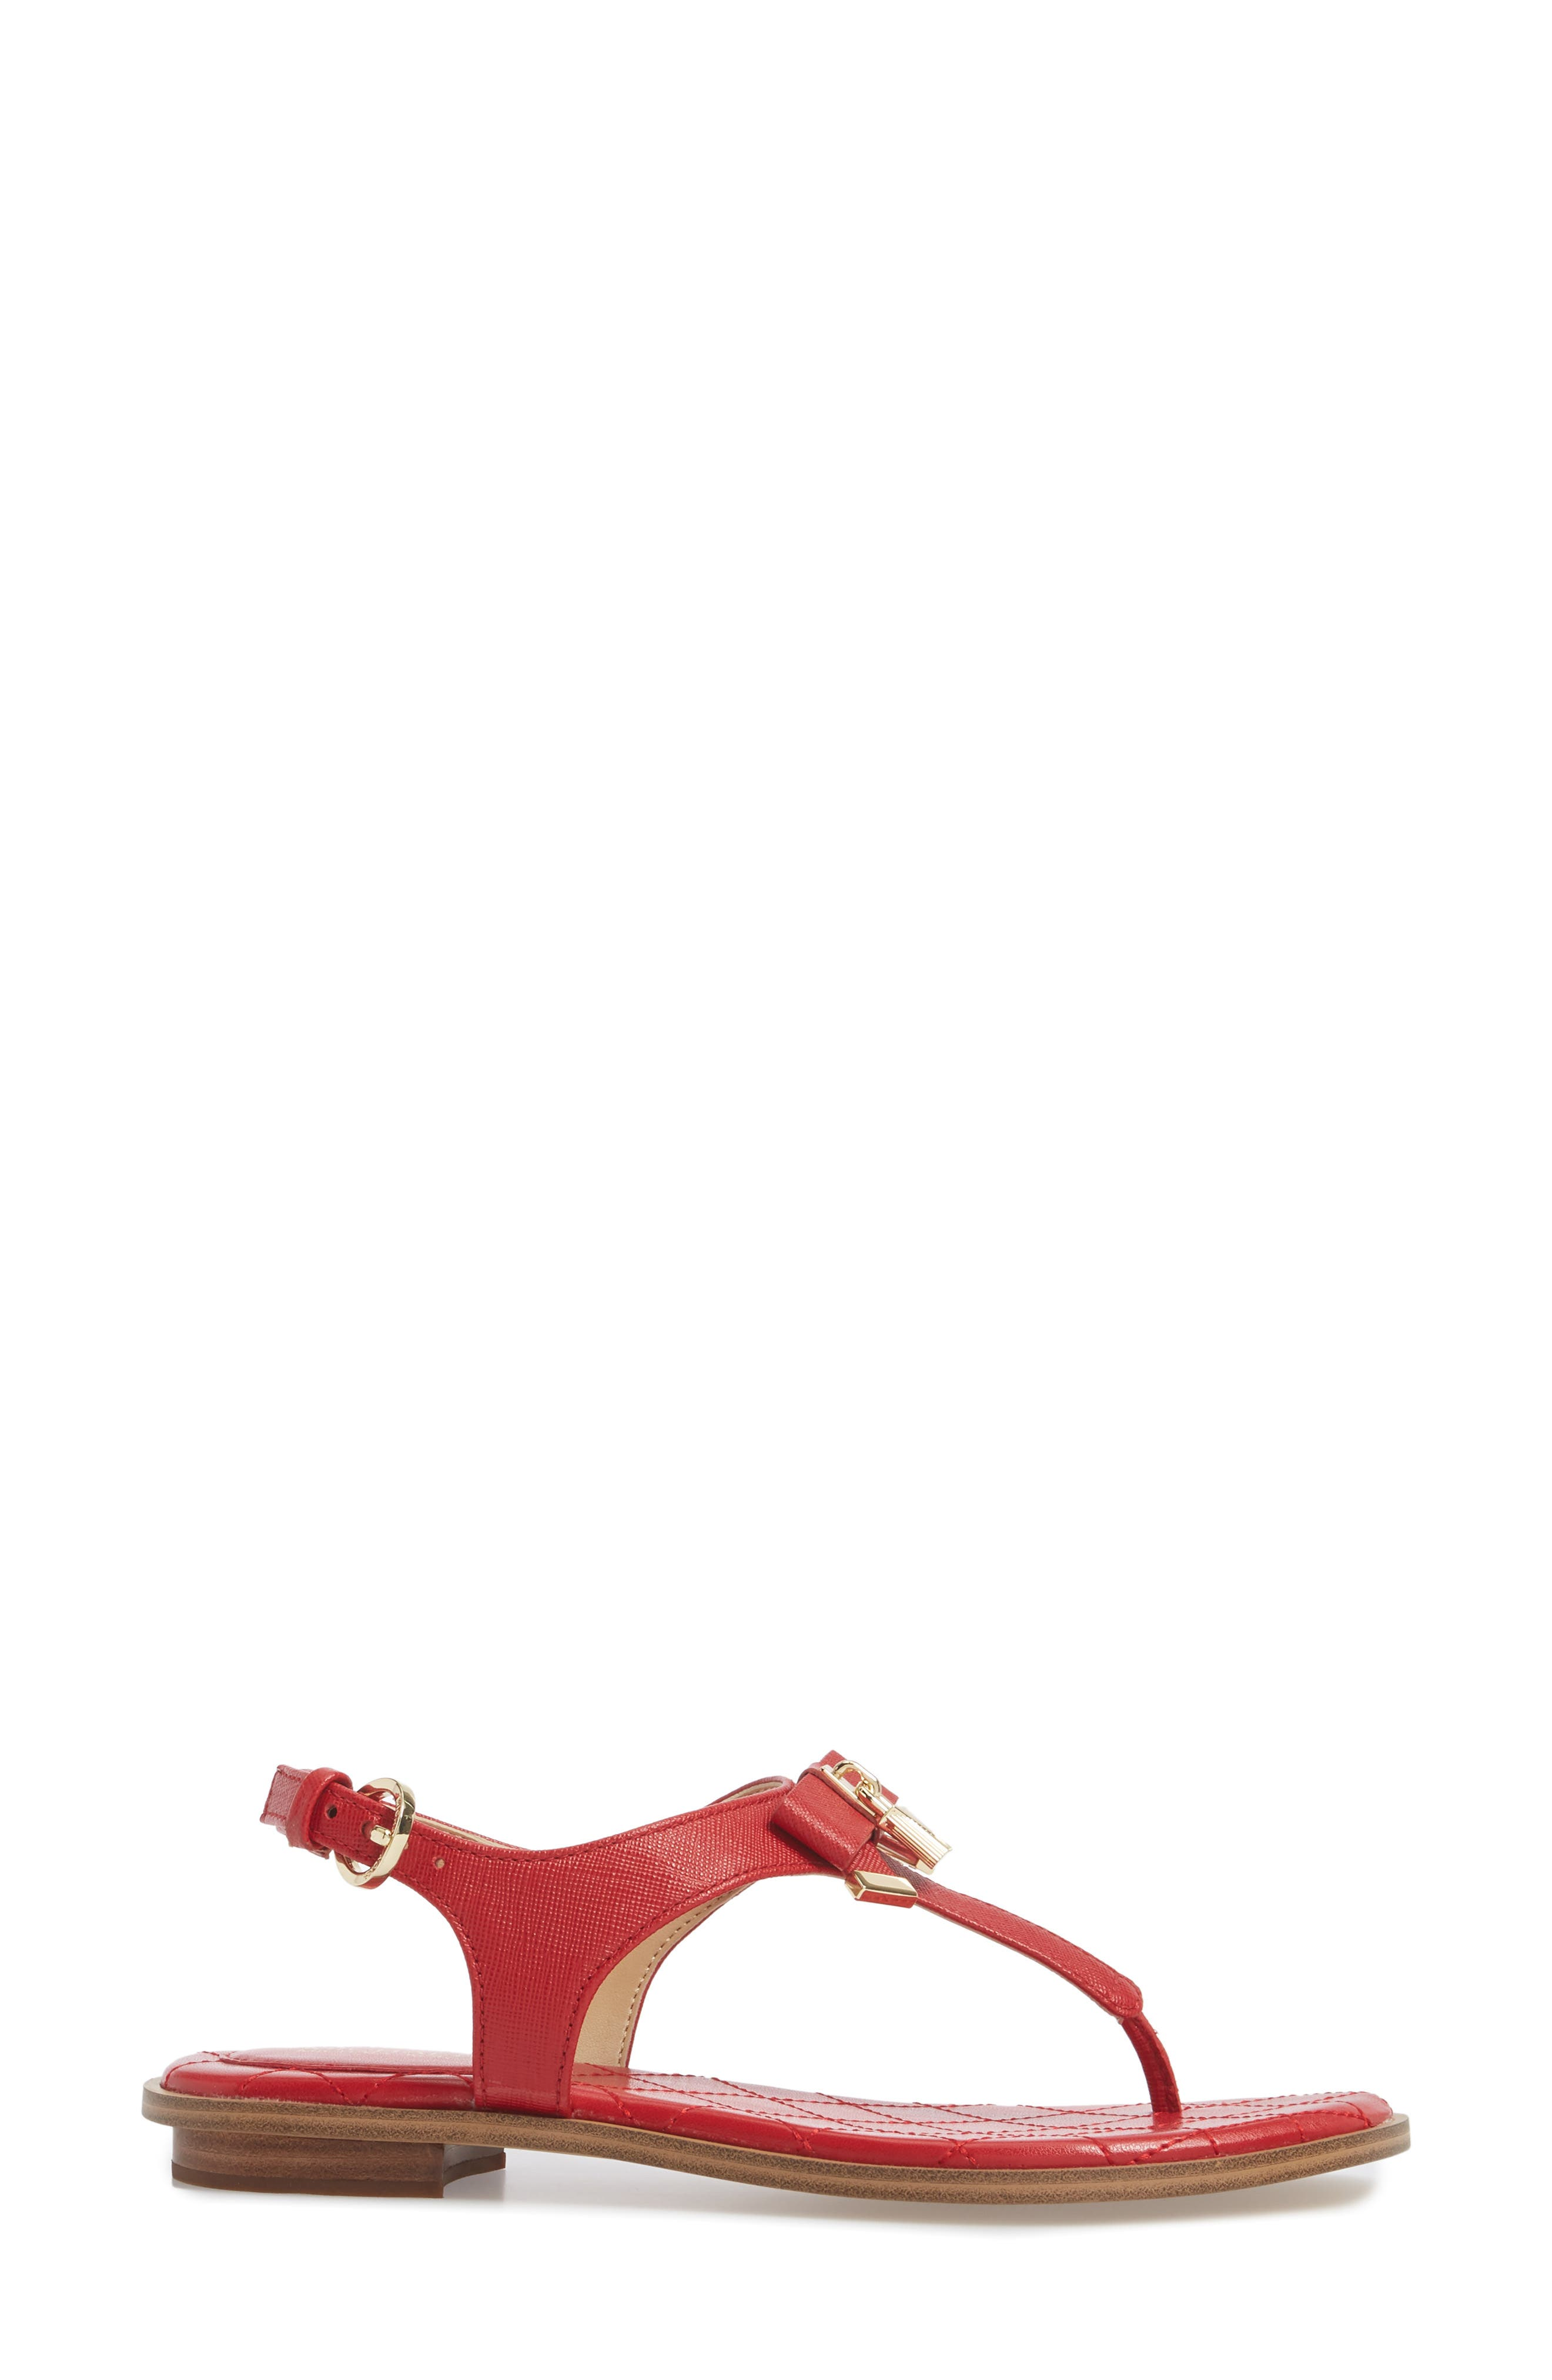 Alice Sandal,                             Alternate thumbnail 3, color,                             Bright Red